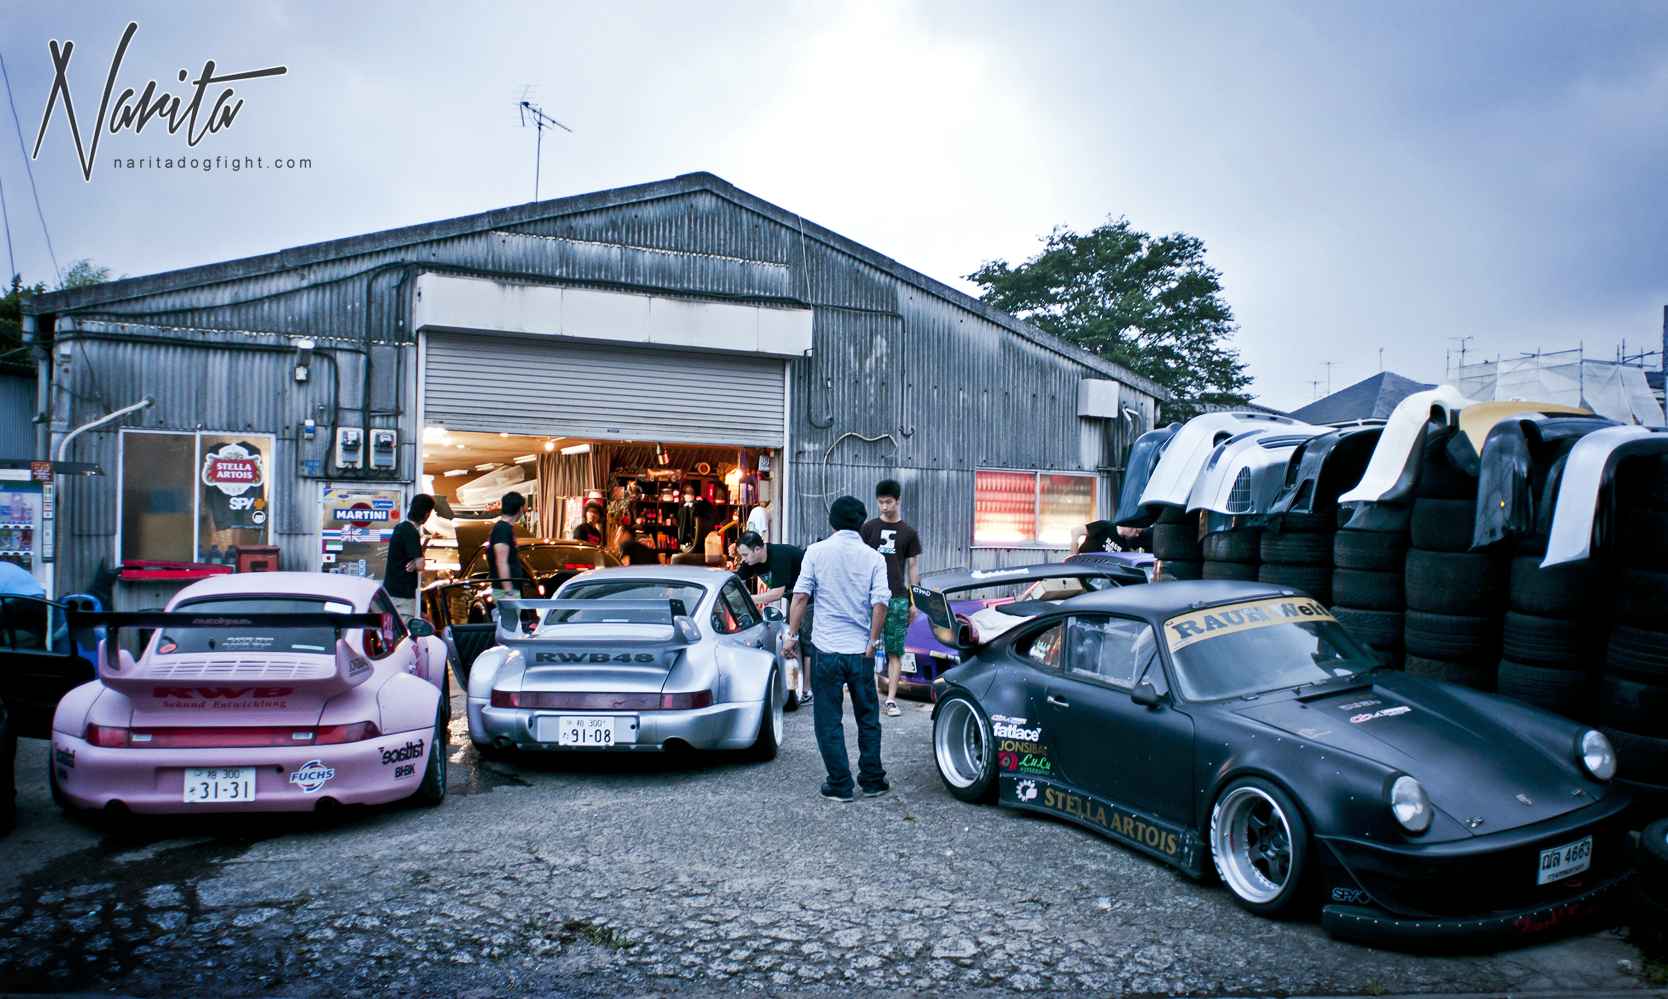 Rwb 4k Wallpaper: One Shot: An Evening At RWB